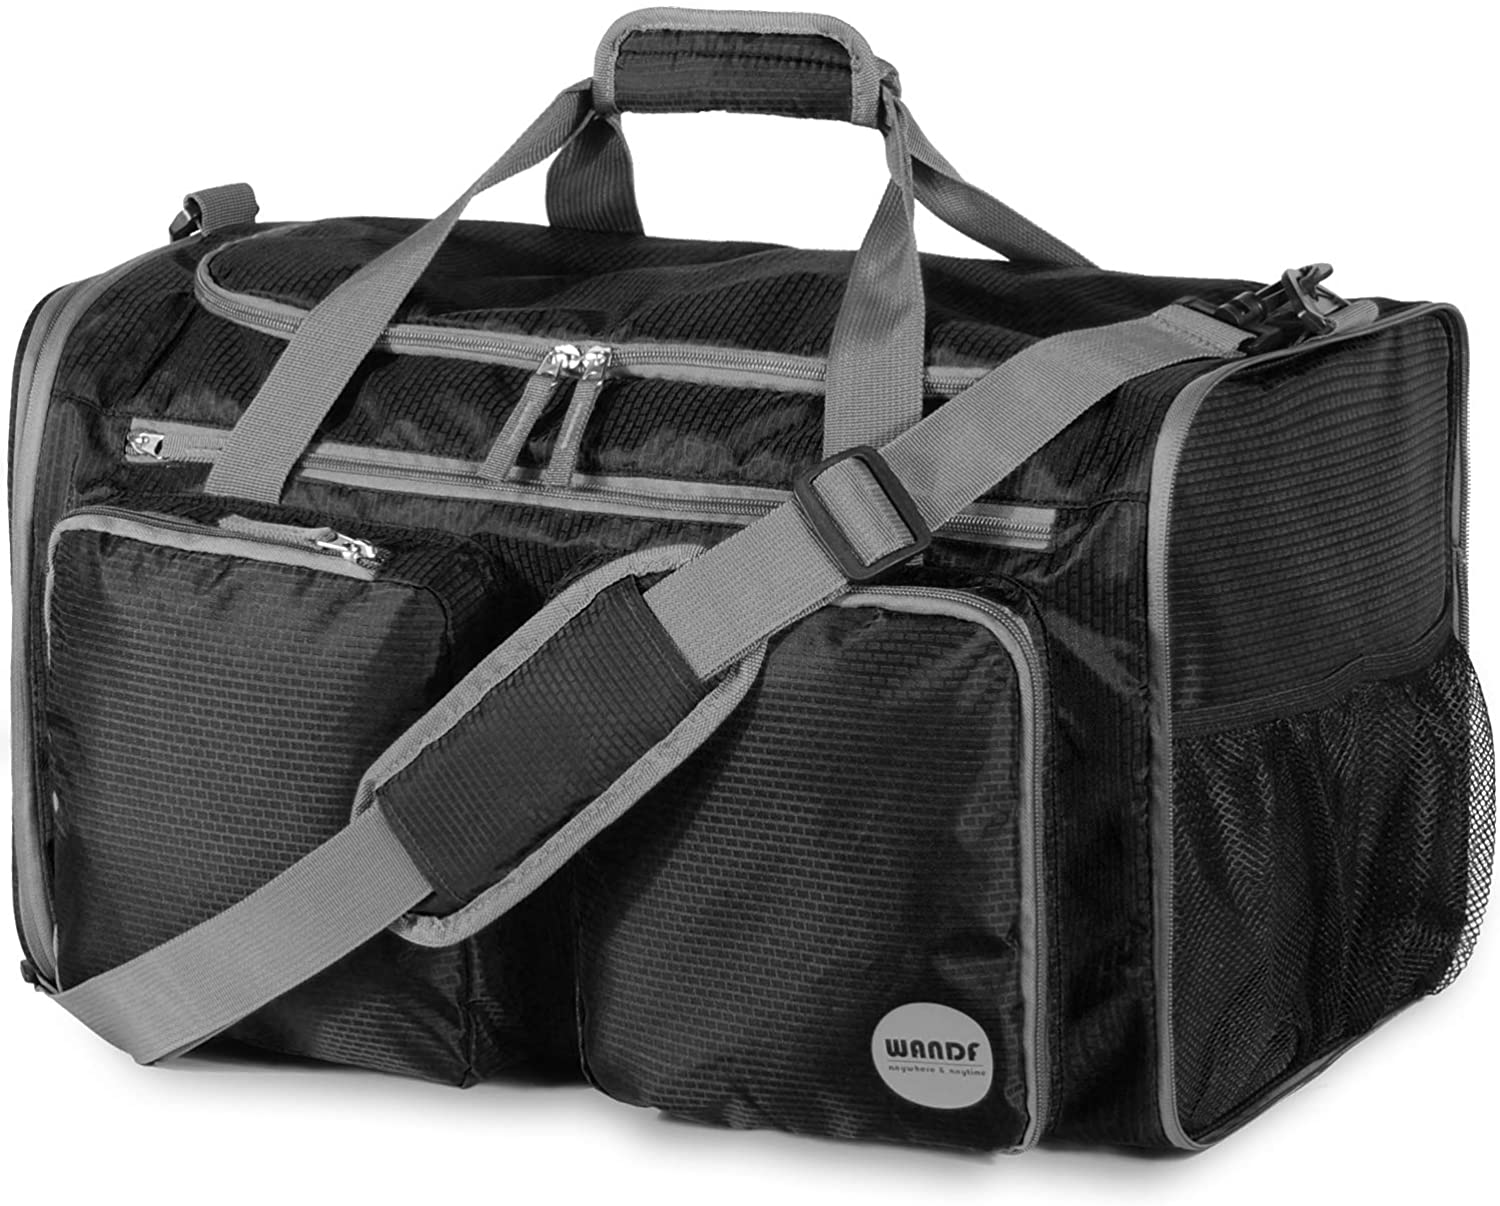 WANDF Foldable Sports Gym Bag with Wet Bag & Shoes Compartment, Travel Duffel for Men and Women